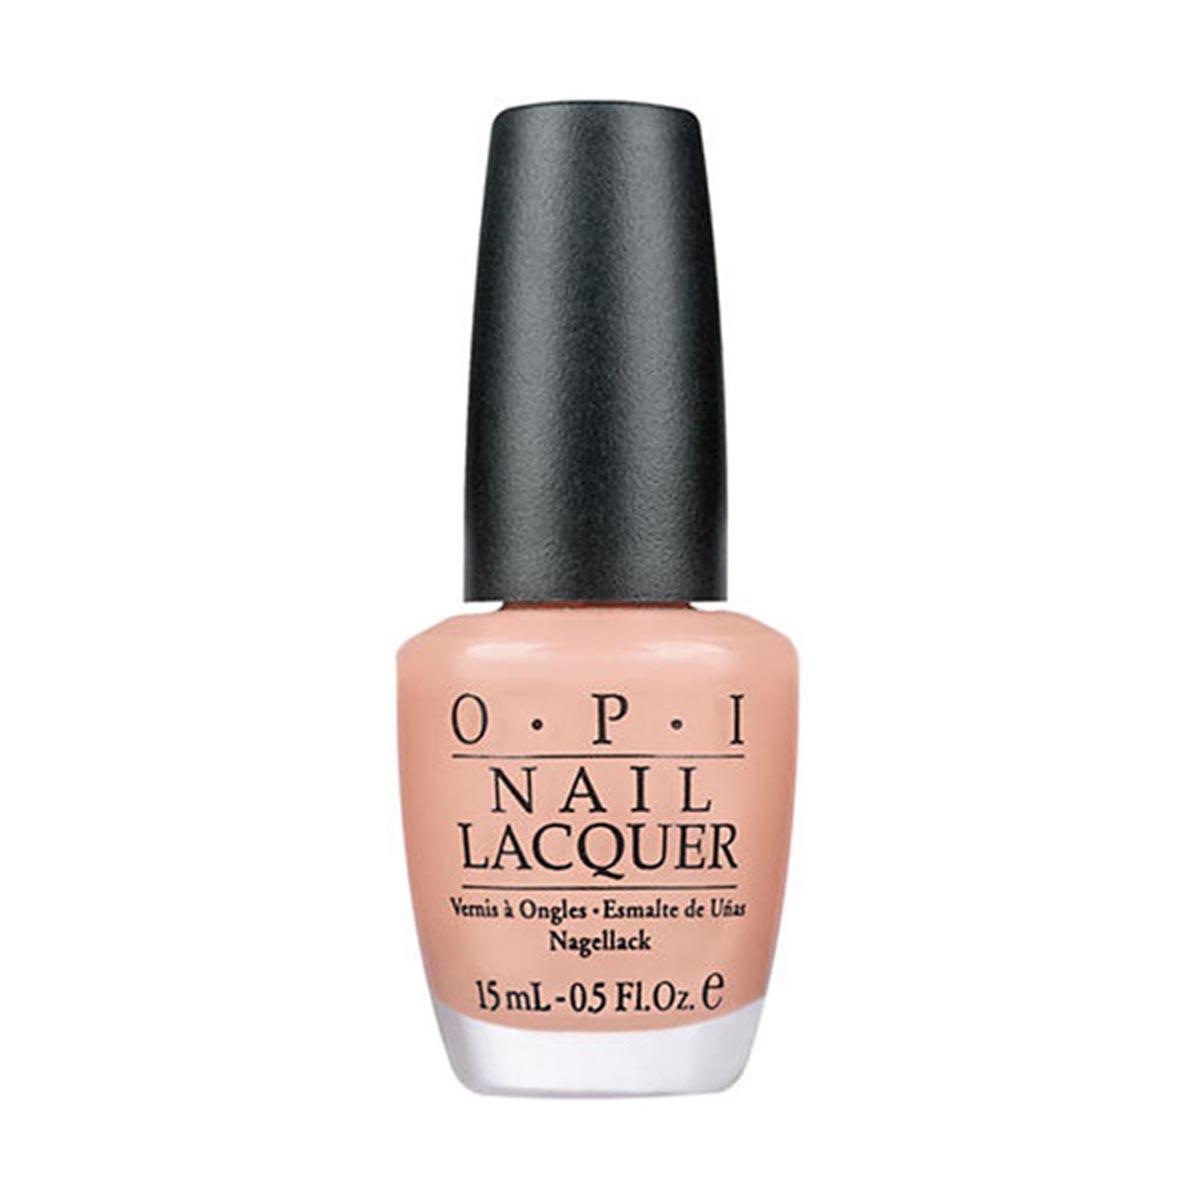 Opi Fragrances Nail Lacquer Nla15 Dulce De Leche, Ongles, Maquillage mode, Maquillage Ongles, 662ac4